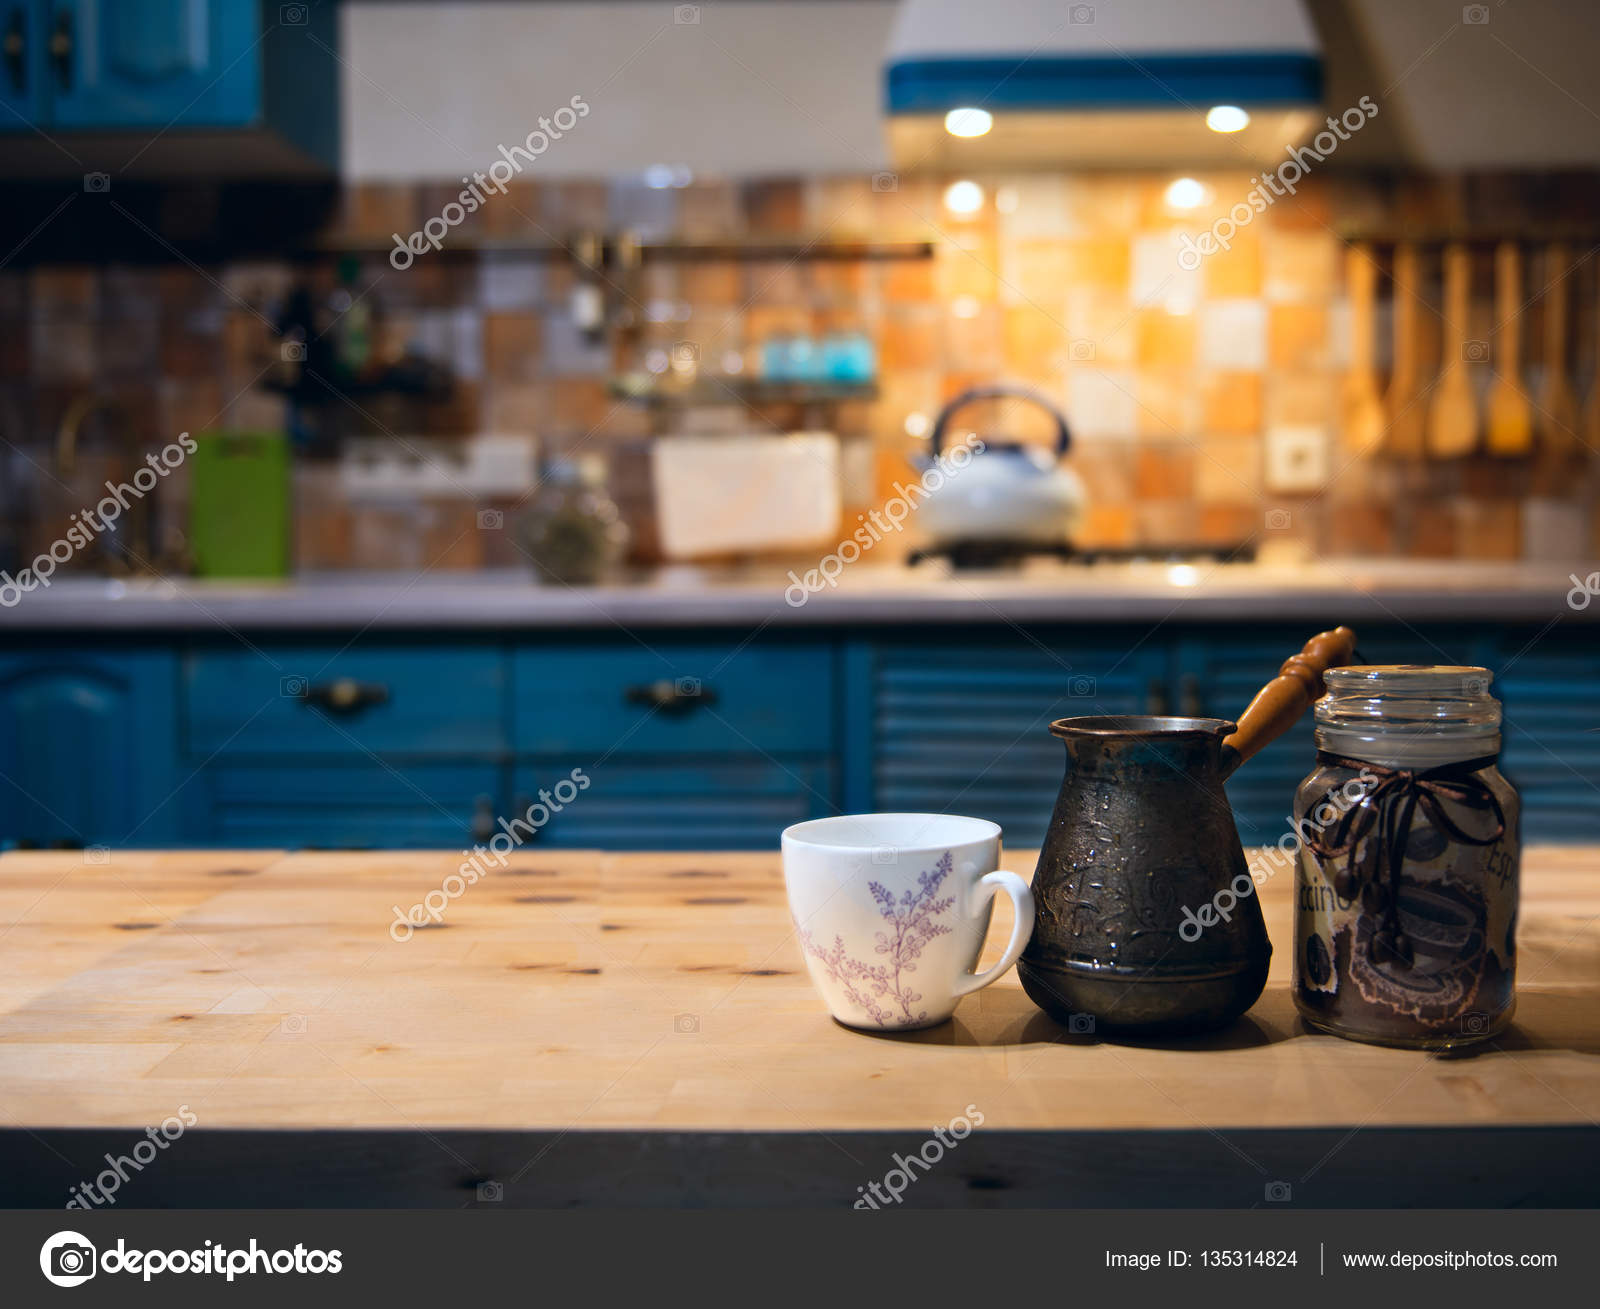 Cucina Country in stile provenzale\